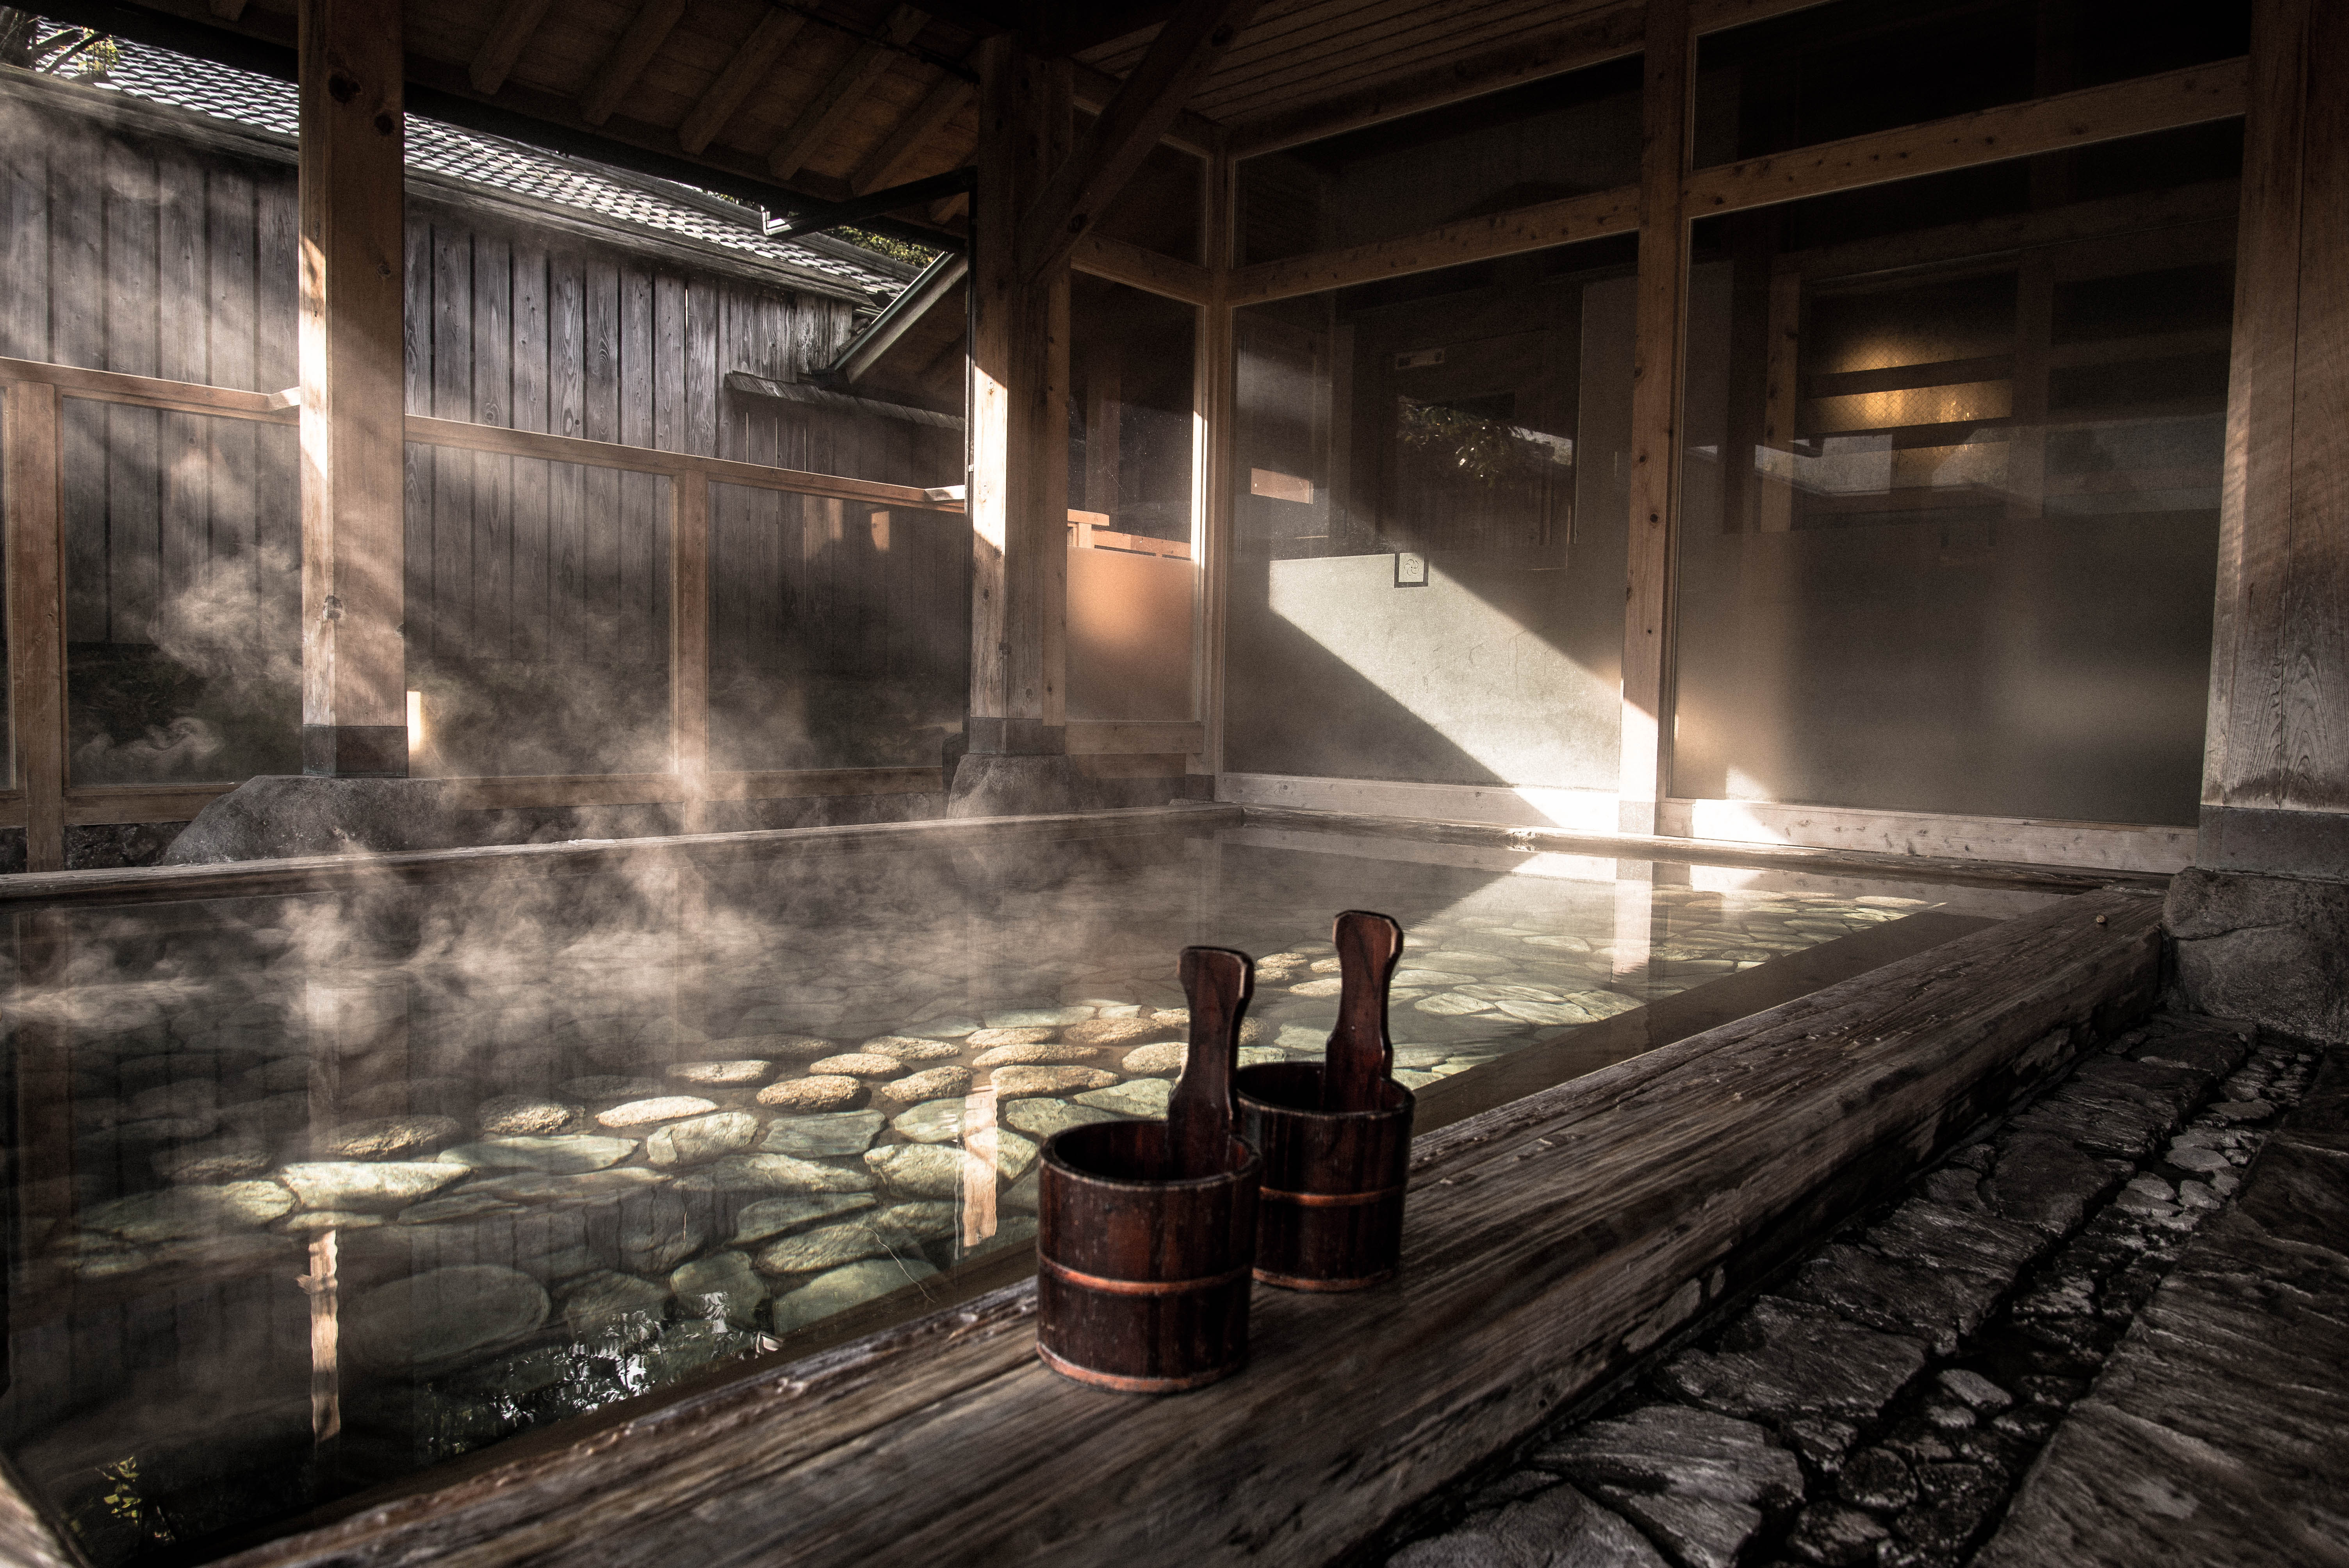 Accès aux bains thermaux (onsen)